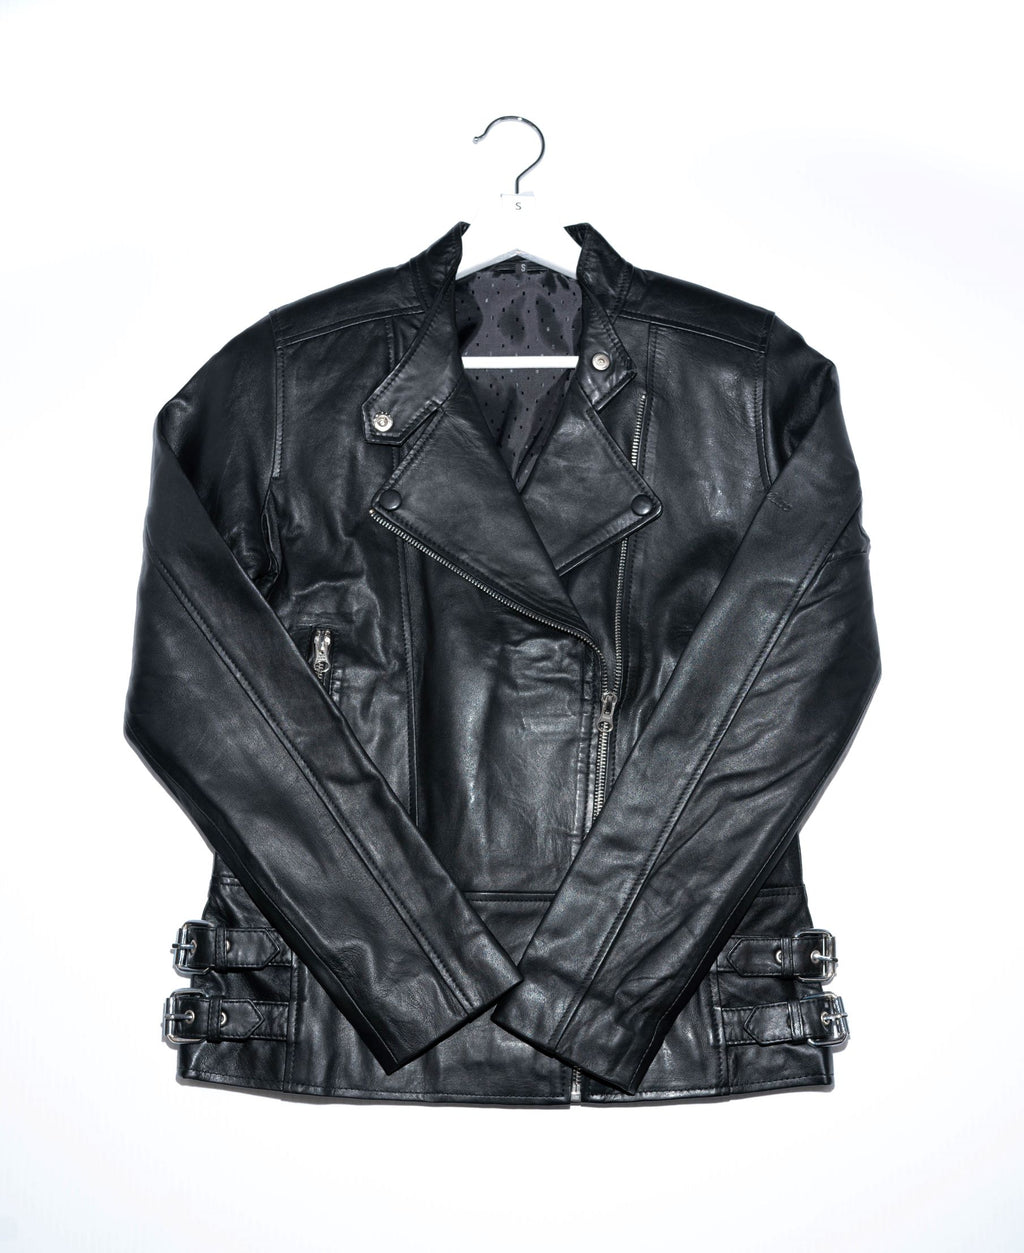 This premium leather jacket has a slim, and feminine fit. It's cut from naked leather made in India that's been hand selected for a luxurious look and feel. This jacket has an asymmetric closure and exposed hardware.